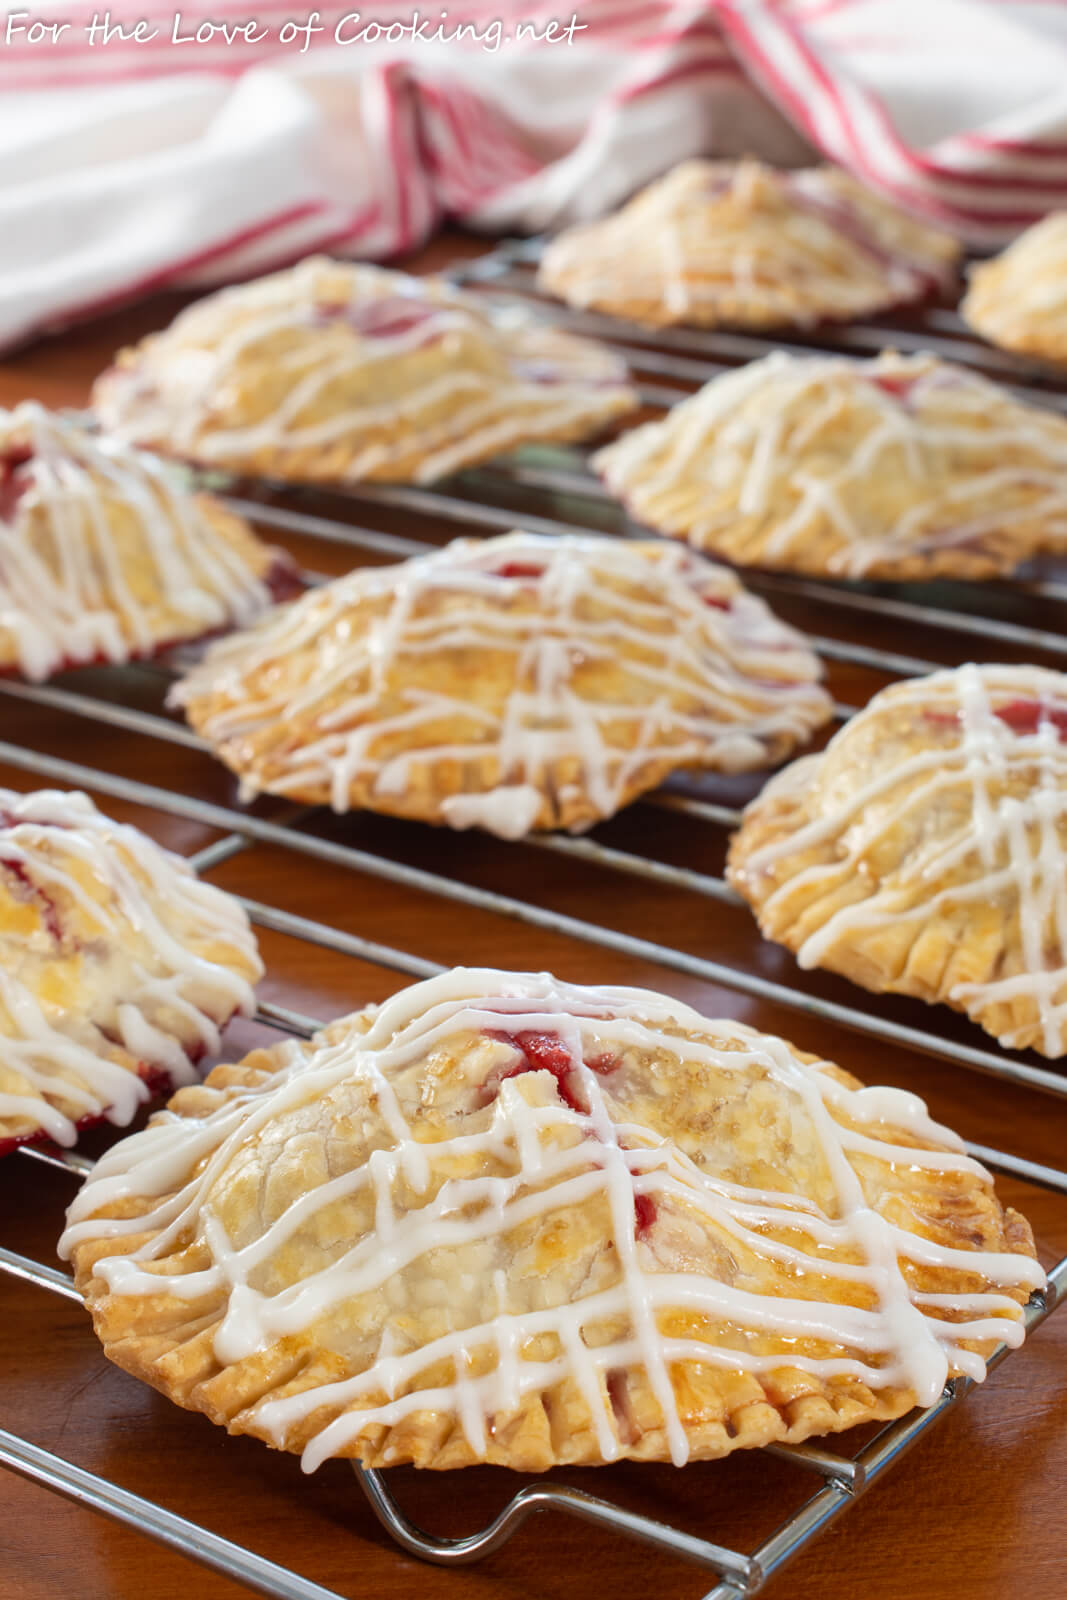 Strawberry Hand Pies with Vanilla Glaze